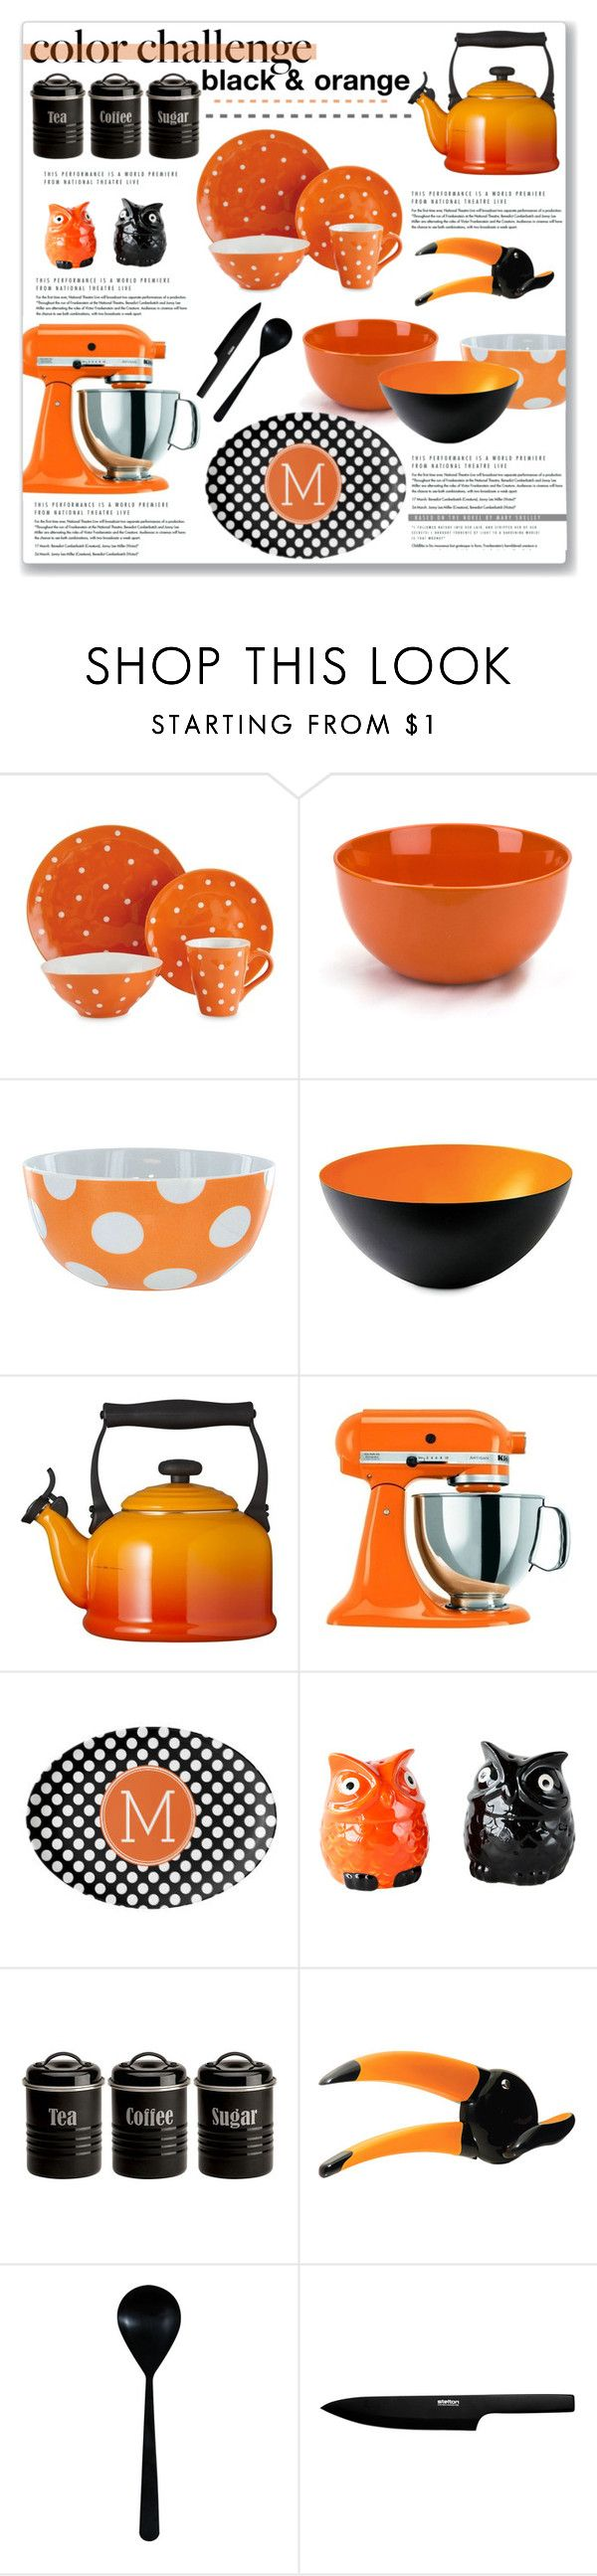 best 25+ orange kitchen decor ideas on pinterest | orange display